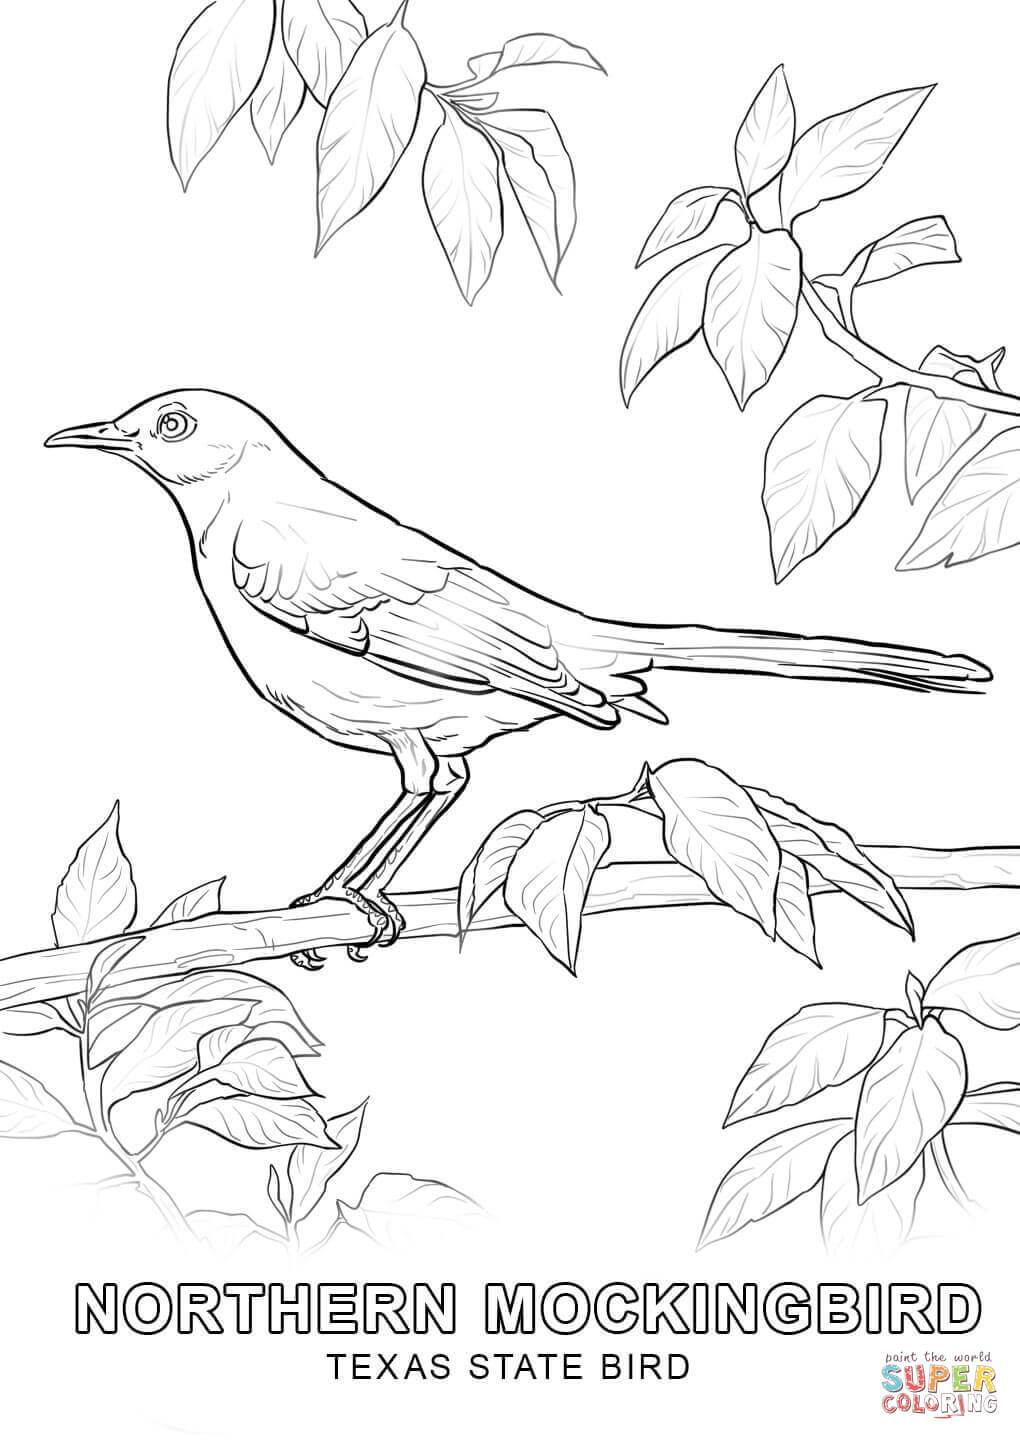 Texas State Symbols Coloring Pages - Coloring Home